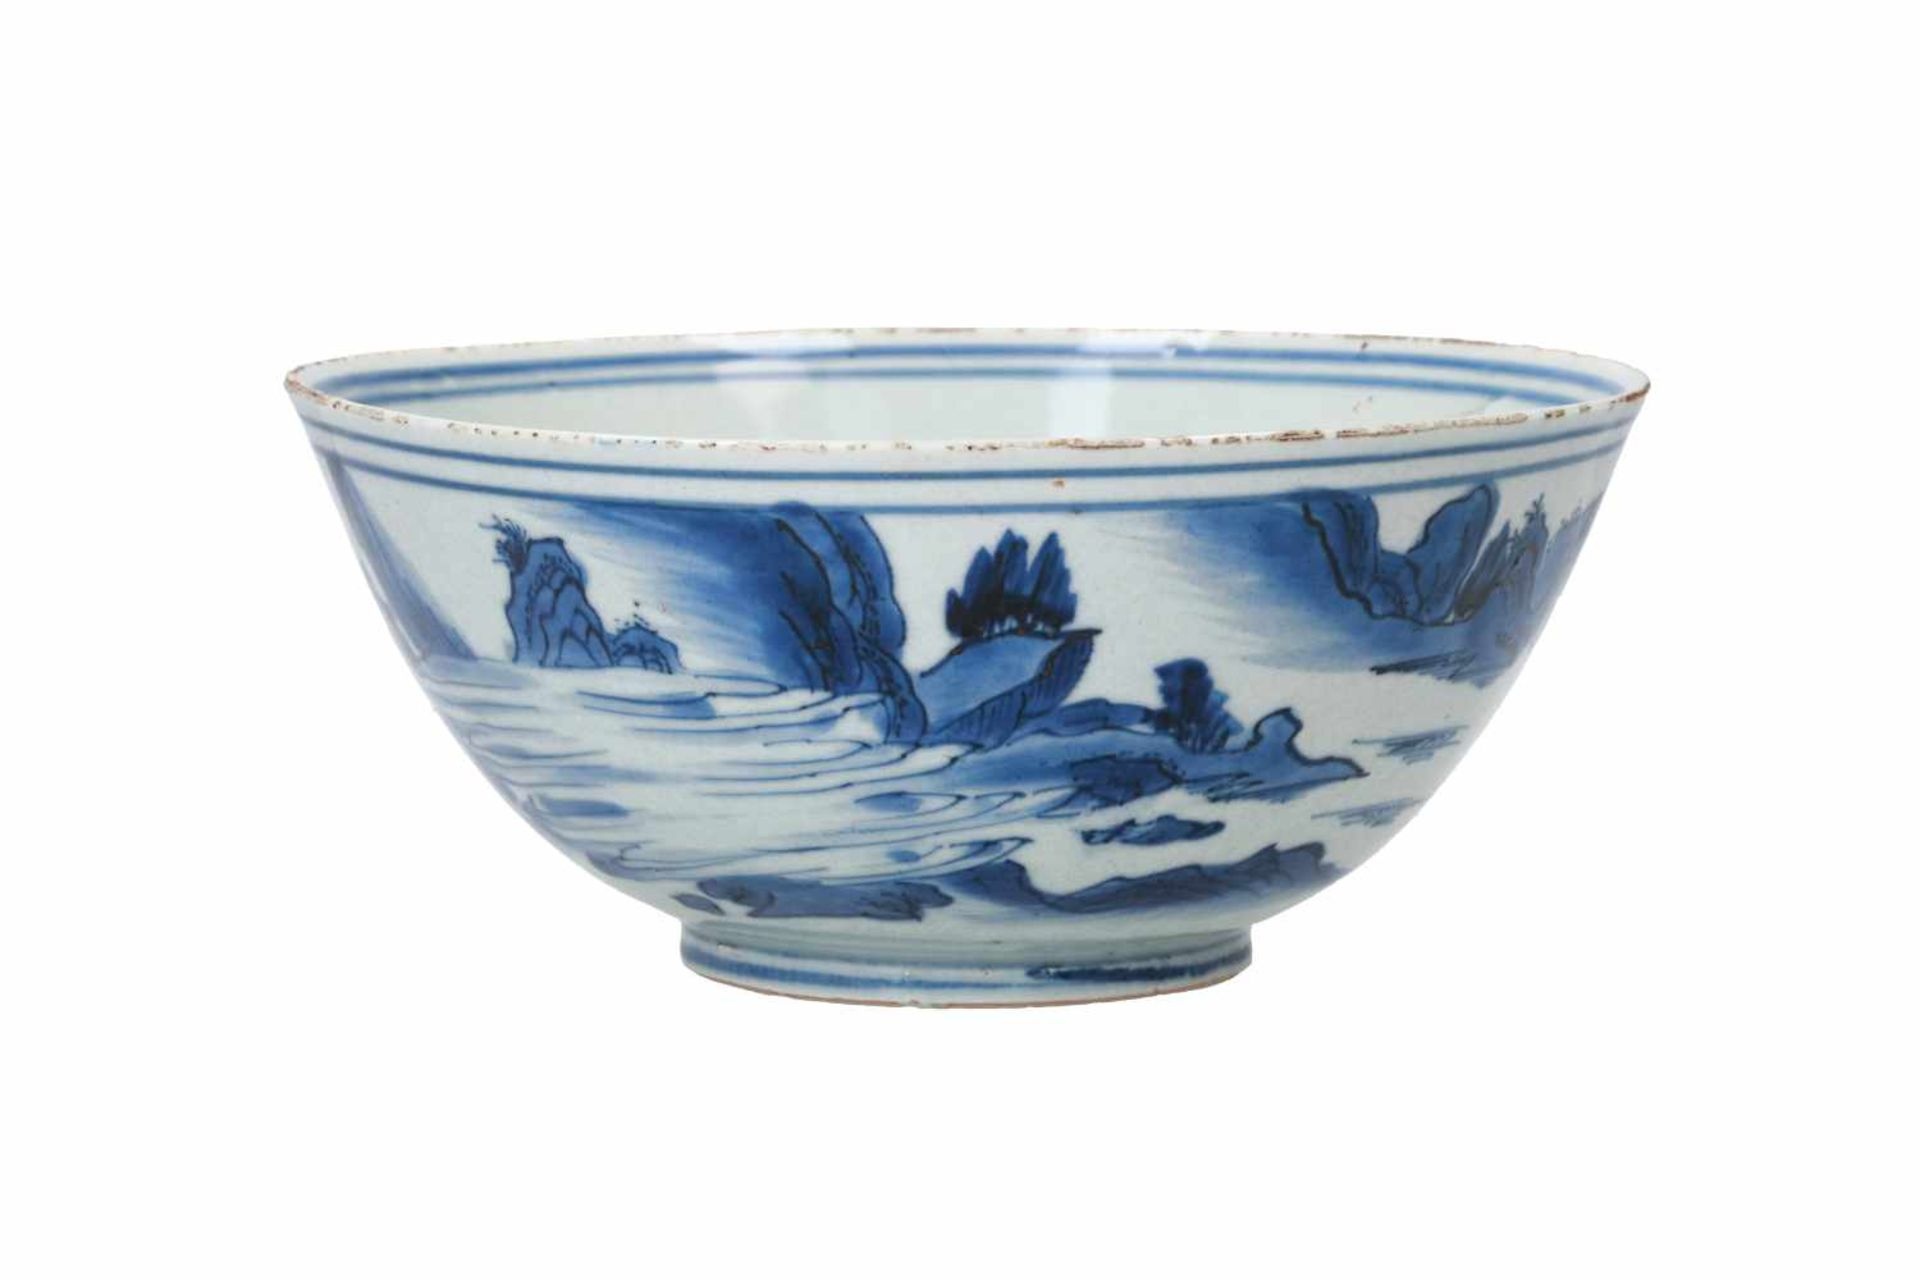 A blue and white porcelain bowl, decorated with a past-master in a mountainous river landscape. - Bild 3 aus 6